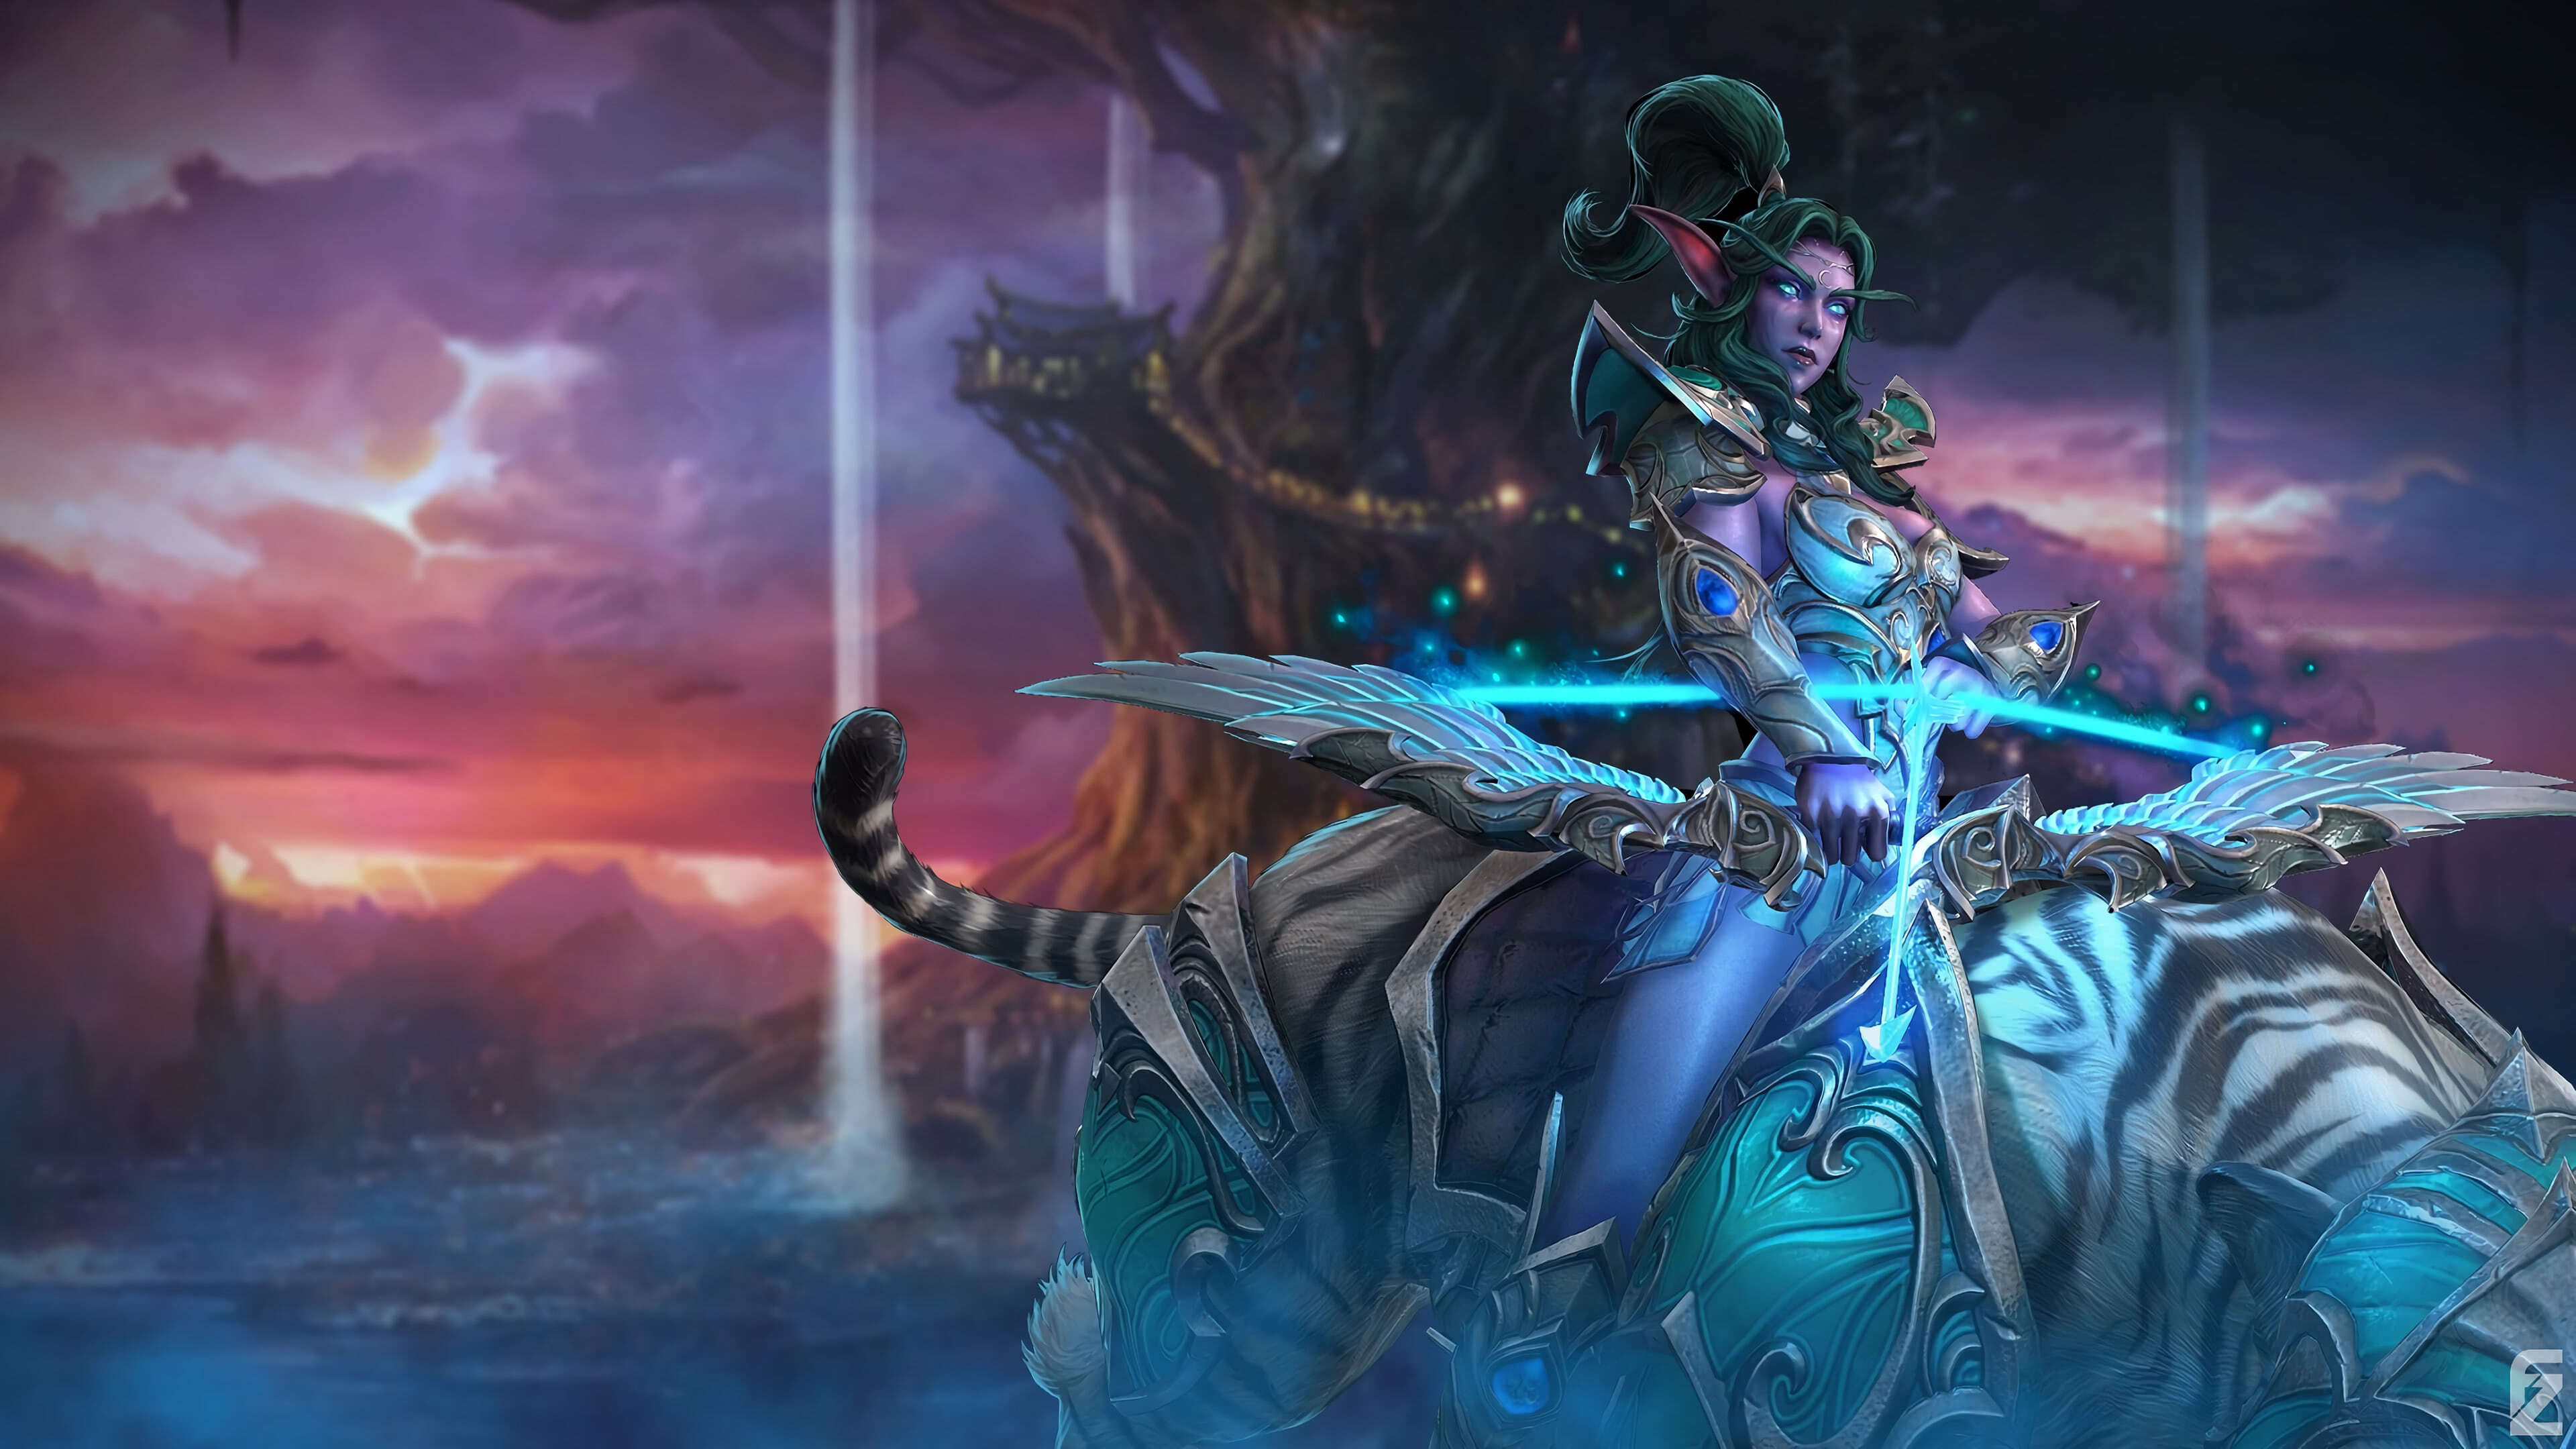 World Of Warcraft Tyrande Whisperwind Uhd 4k Wallpaper Pixelz